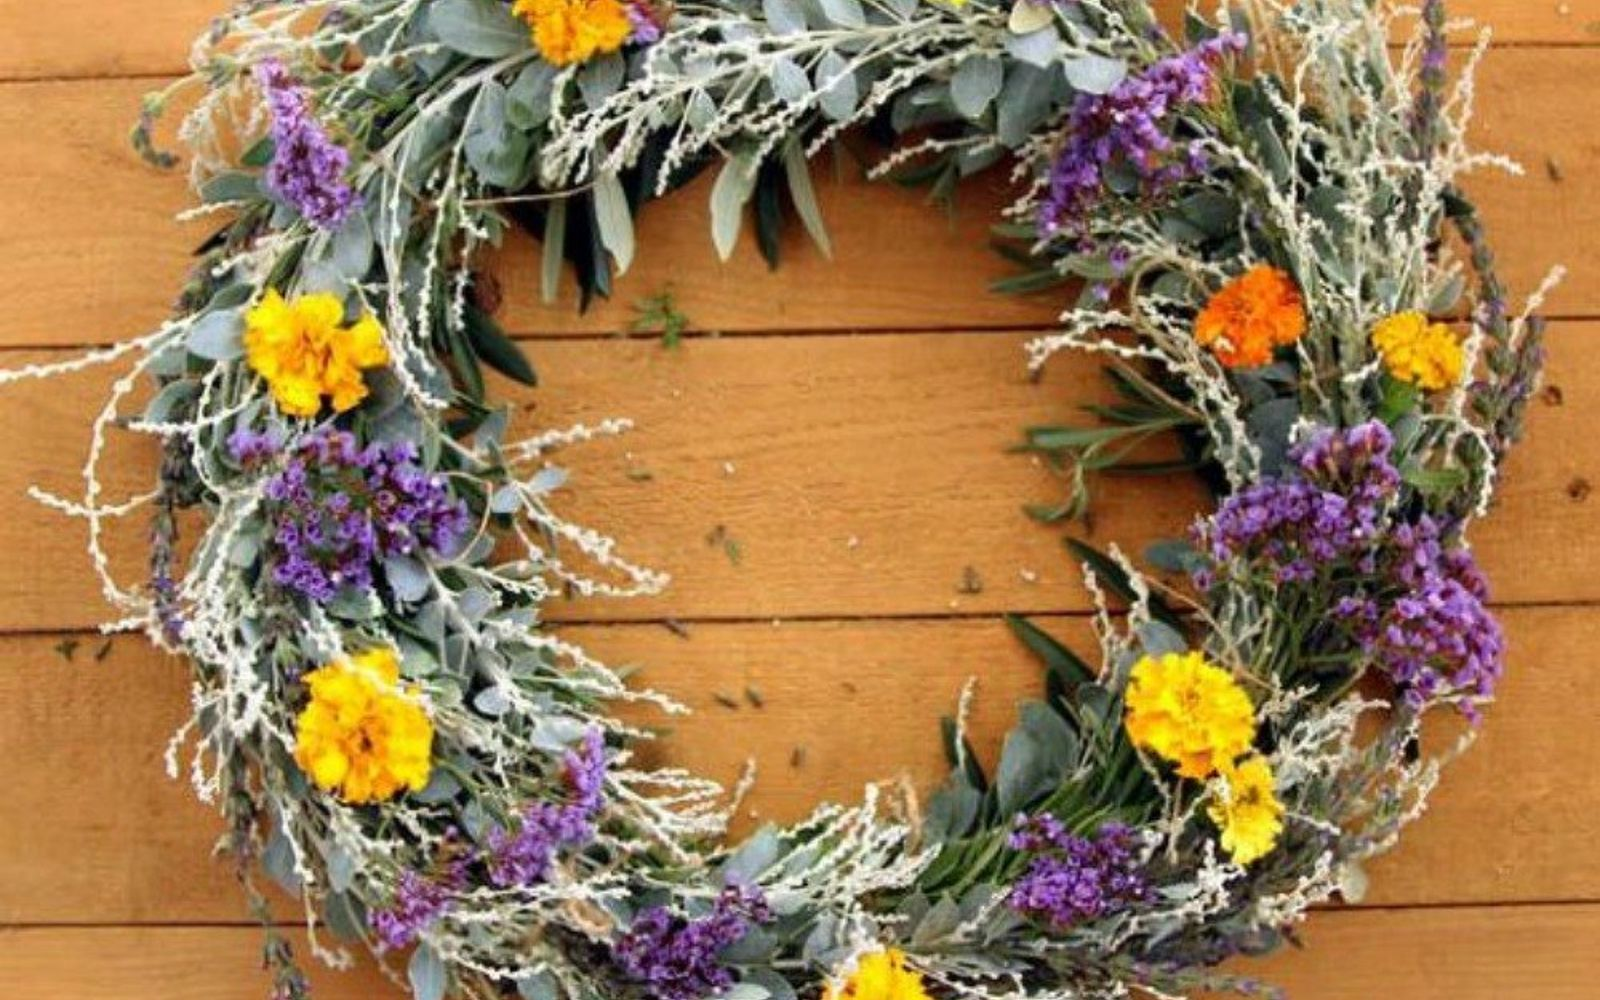 s 17 tricks to make a gorgeous wreath in half the time, crafts, wreaths, Use a dollar store basket to shape the wreath